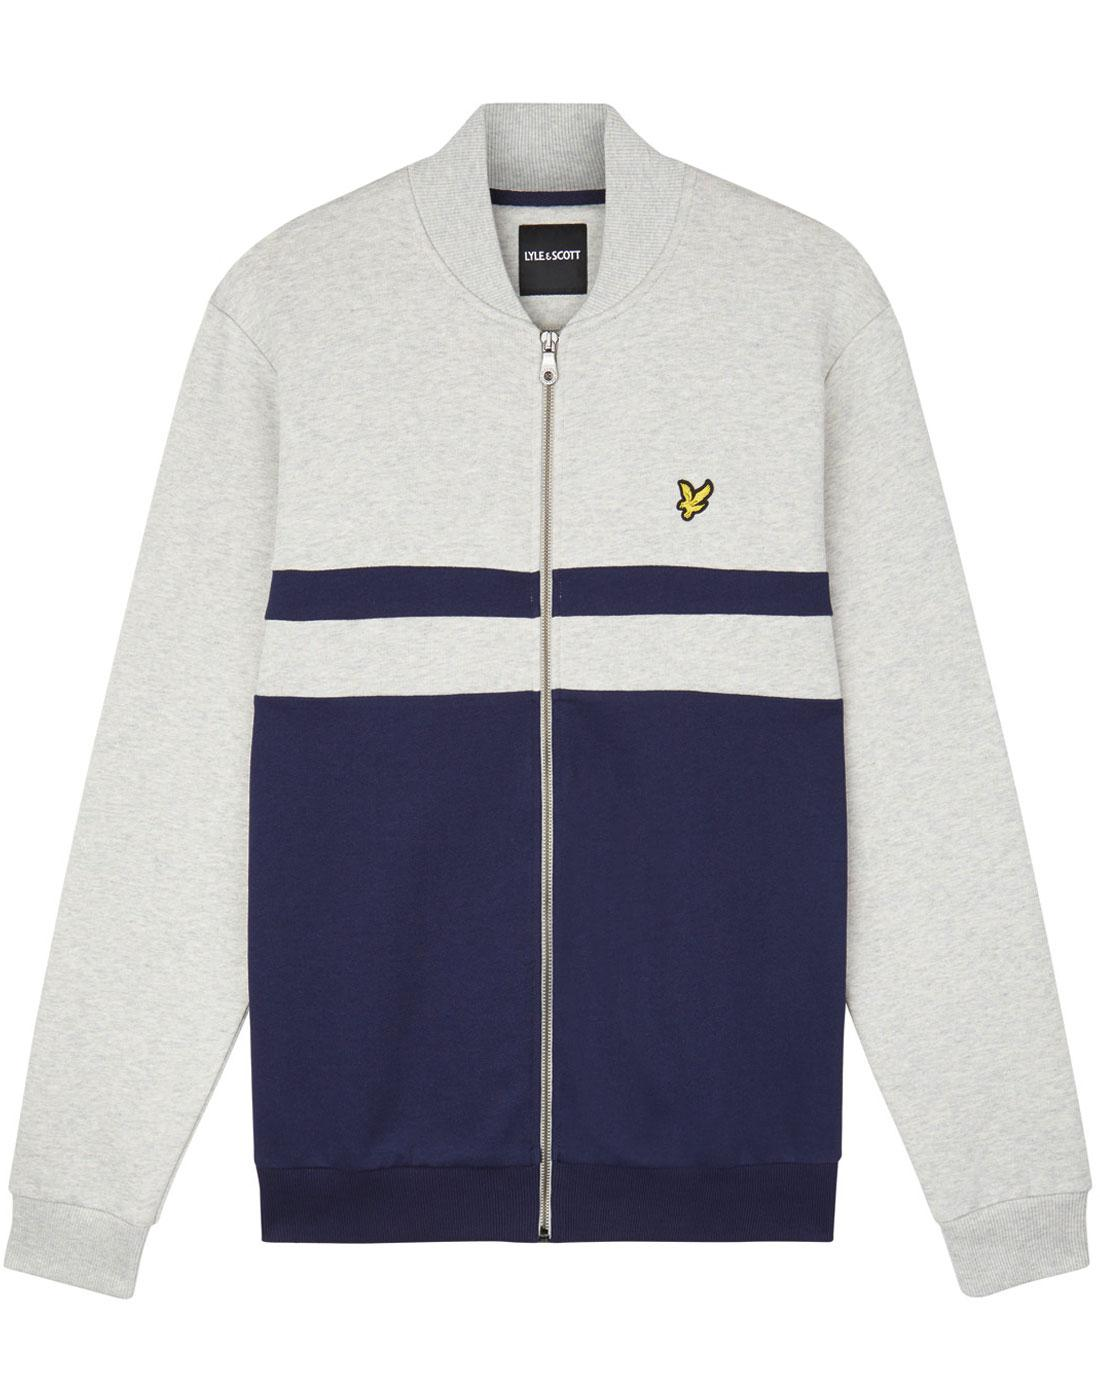 LYLE & SCOTT Retro Yoke Stripe Bomber Track Top